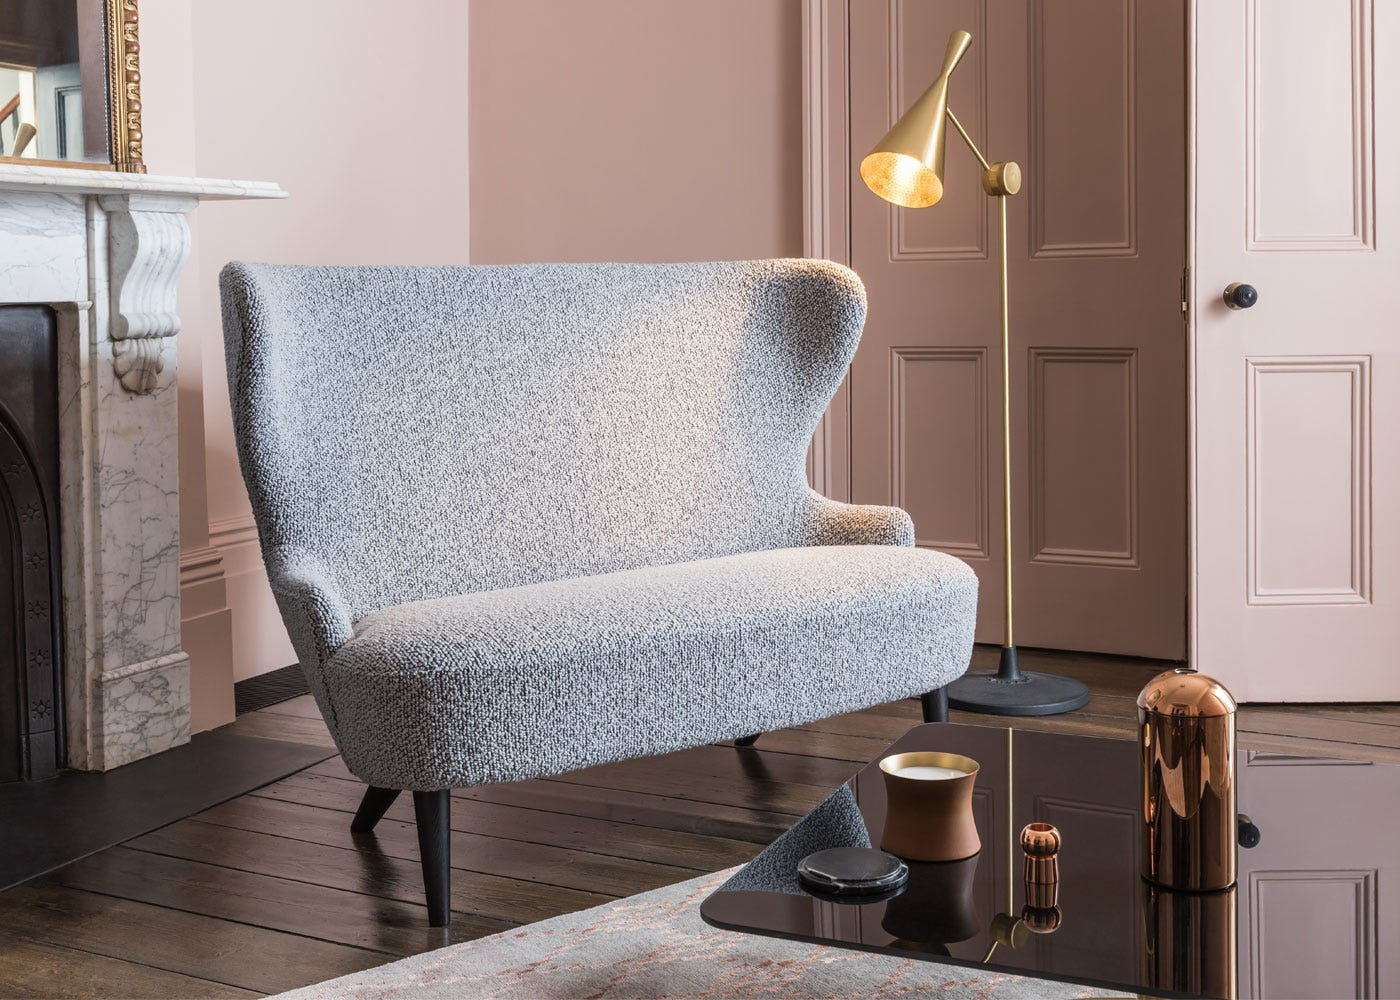 Wingback sofa paired with Beat floor lamp in brass